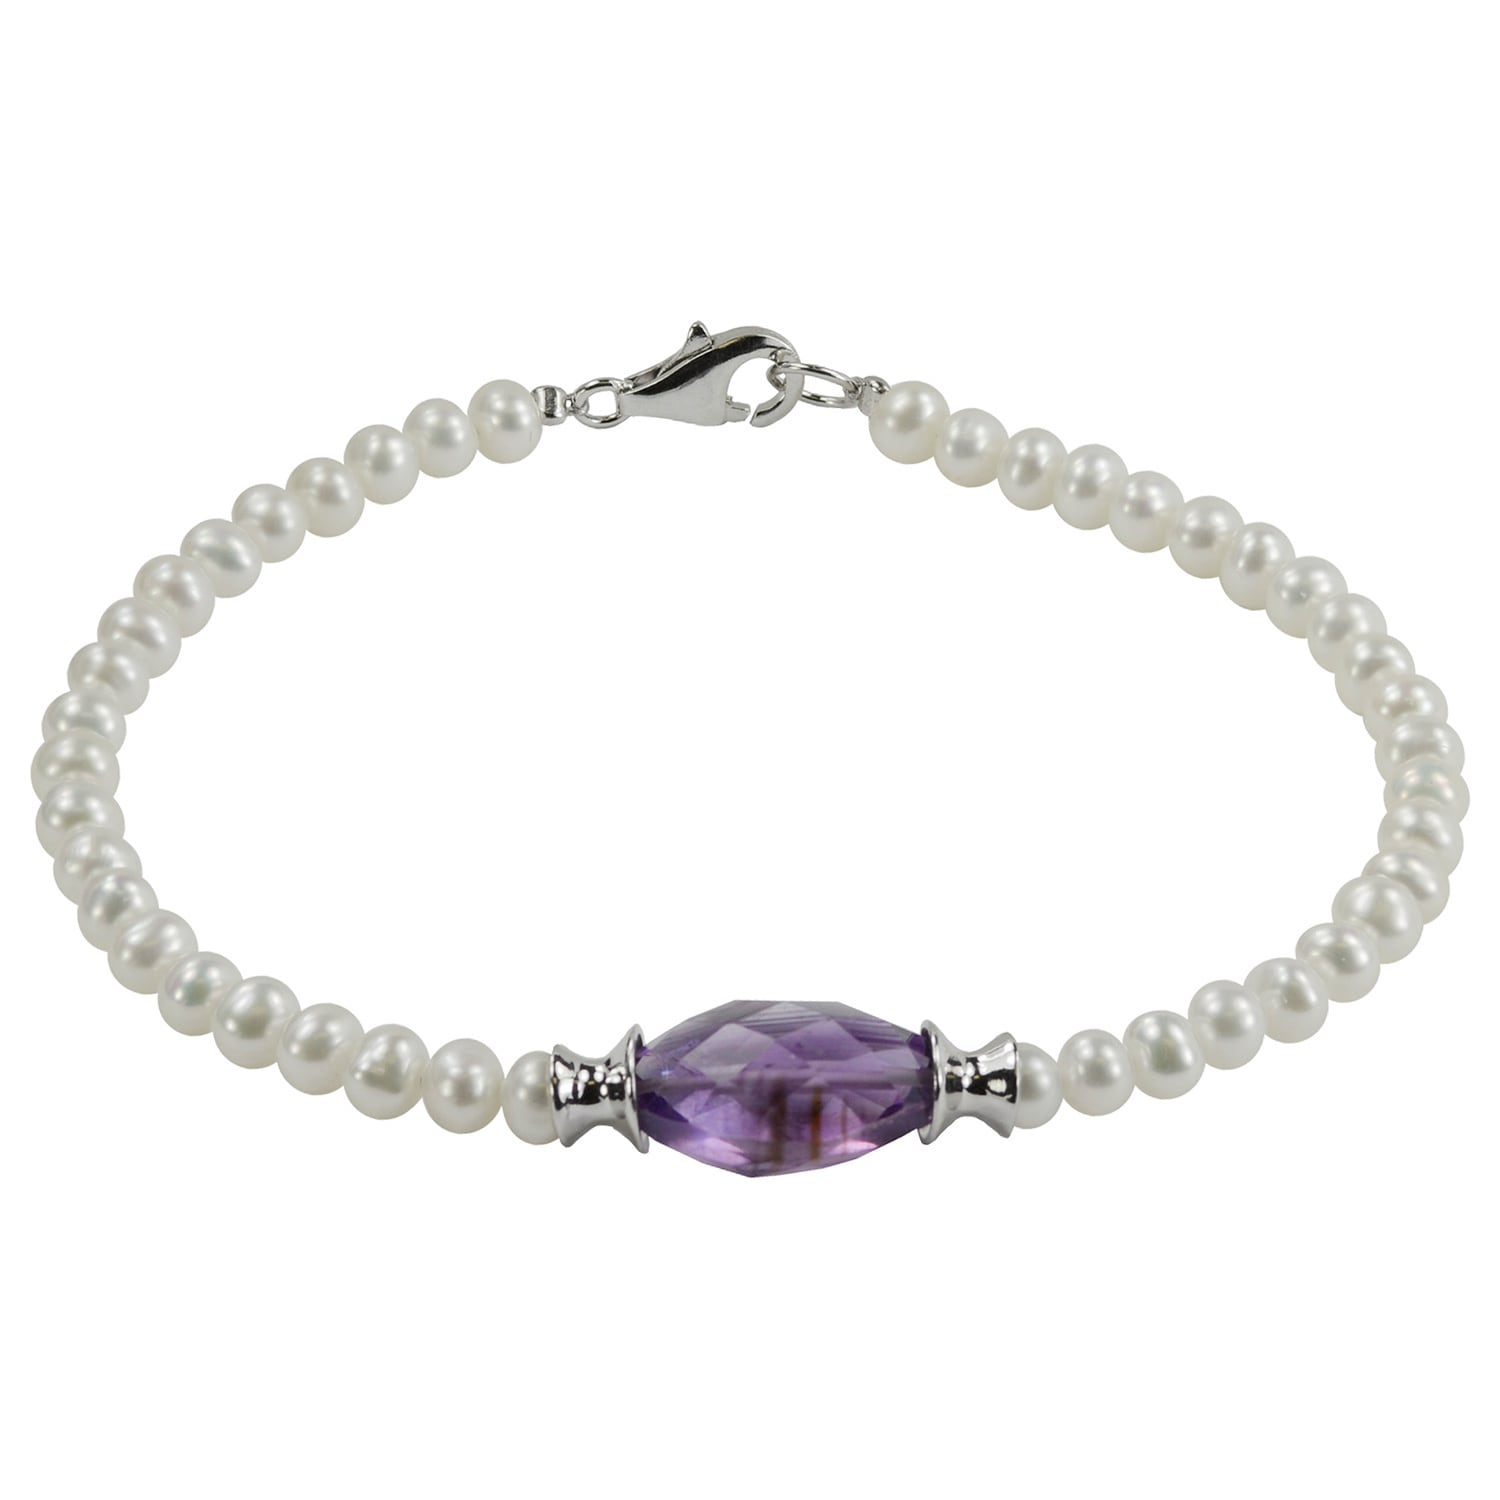 925 Sterling Silver 8mm Purple Freshwater Cultured Pearl Chain Necklace Pendant Charm Fine Jewelry For Women Gift Set